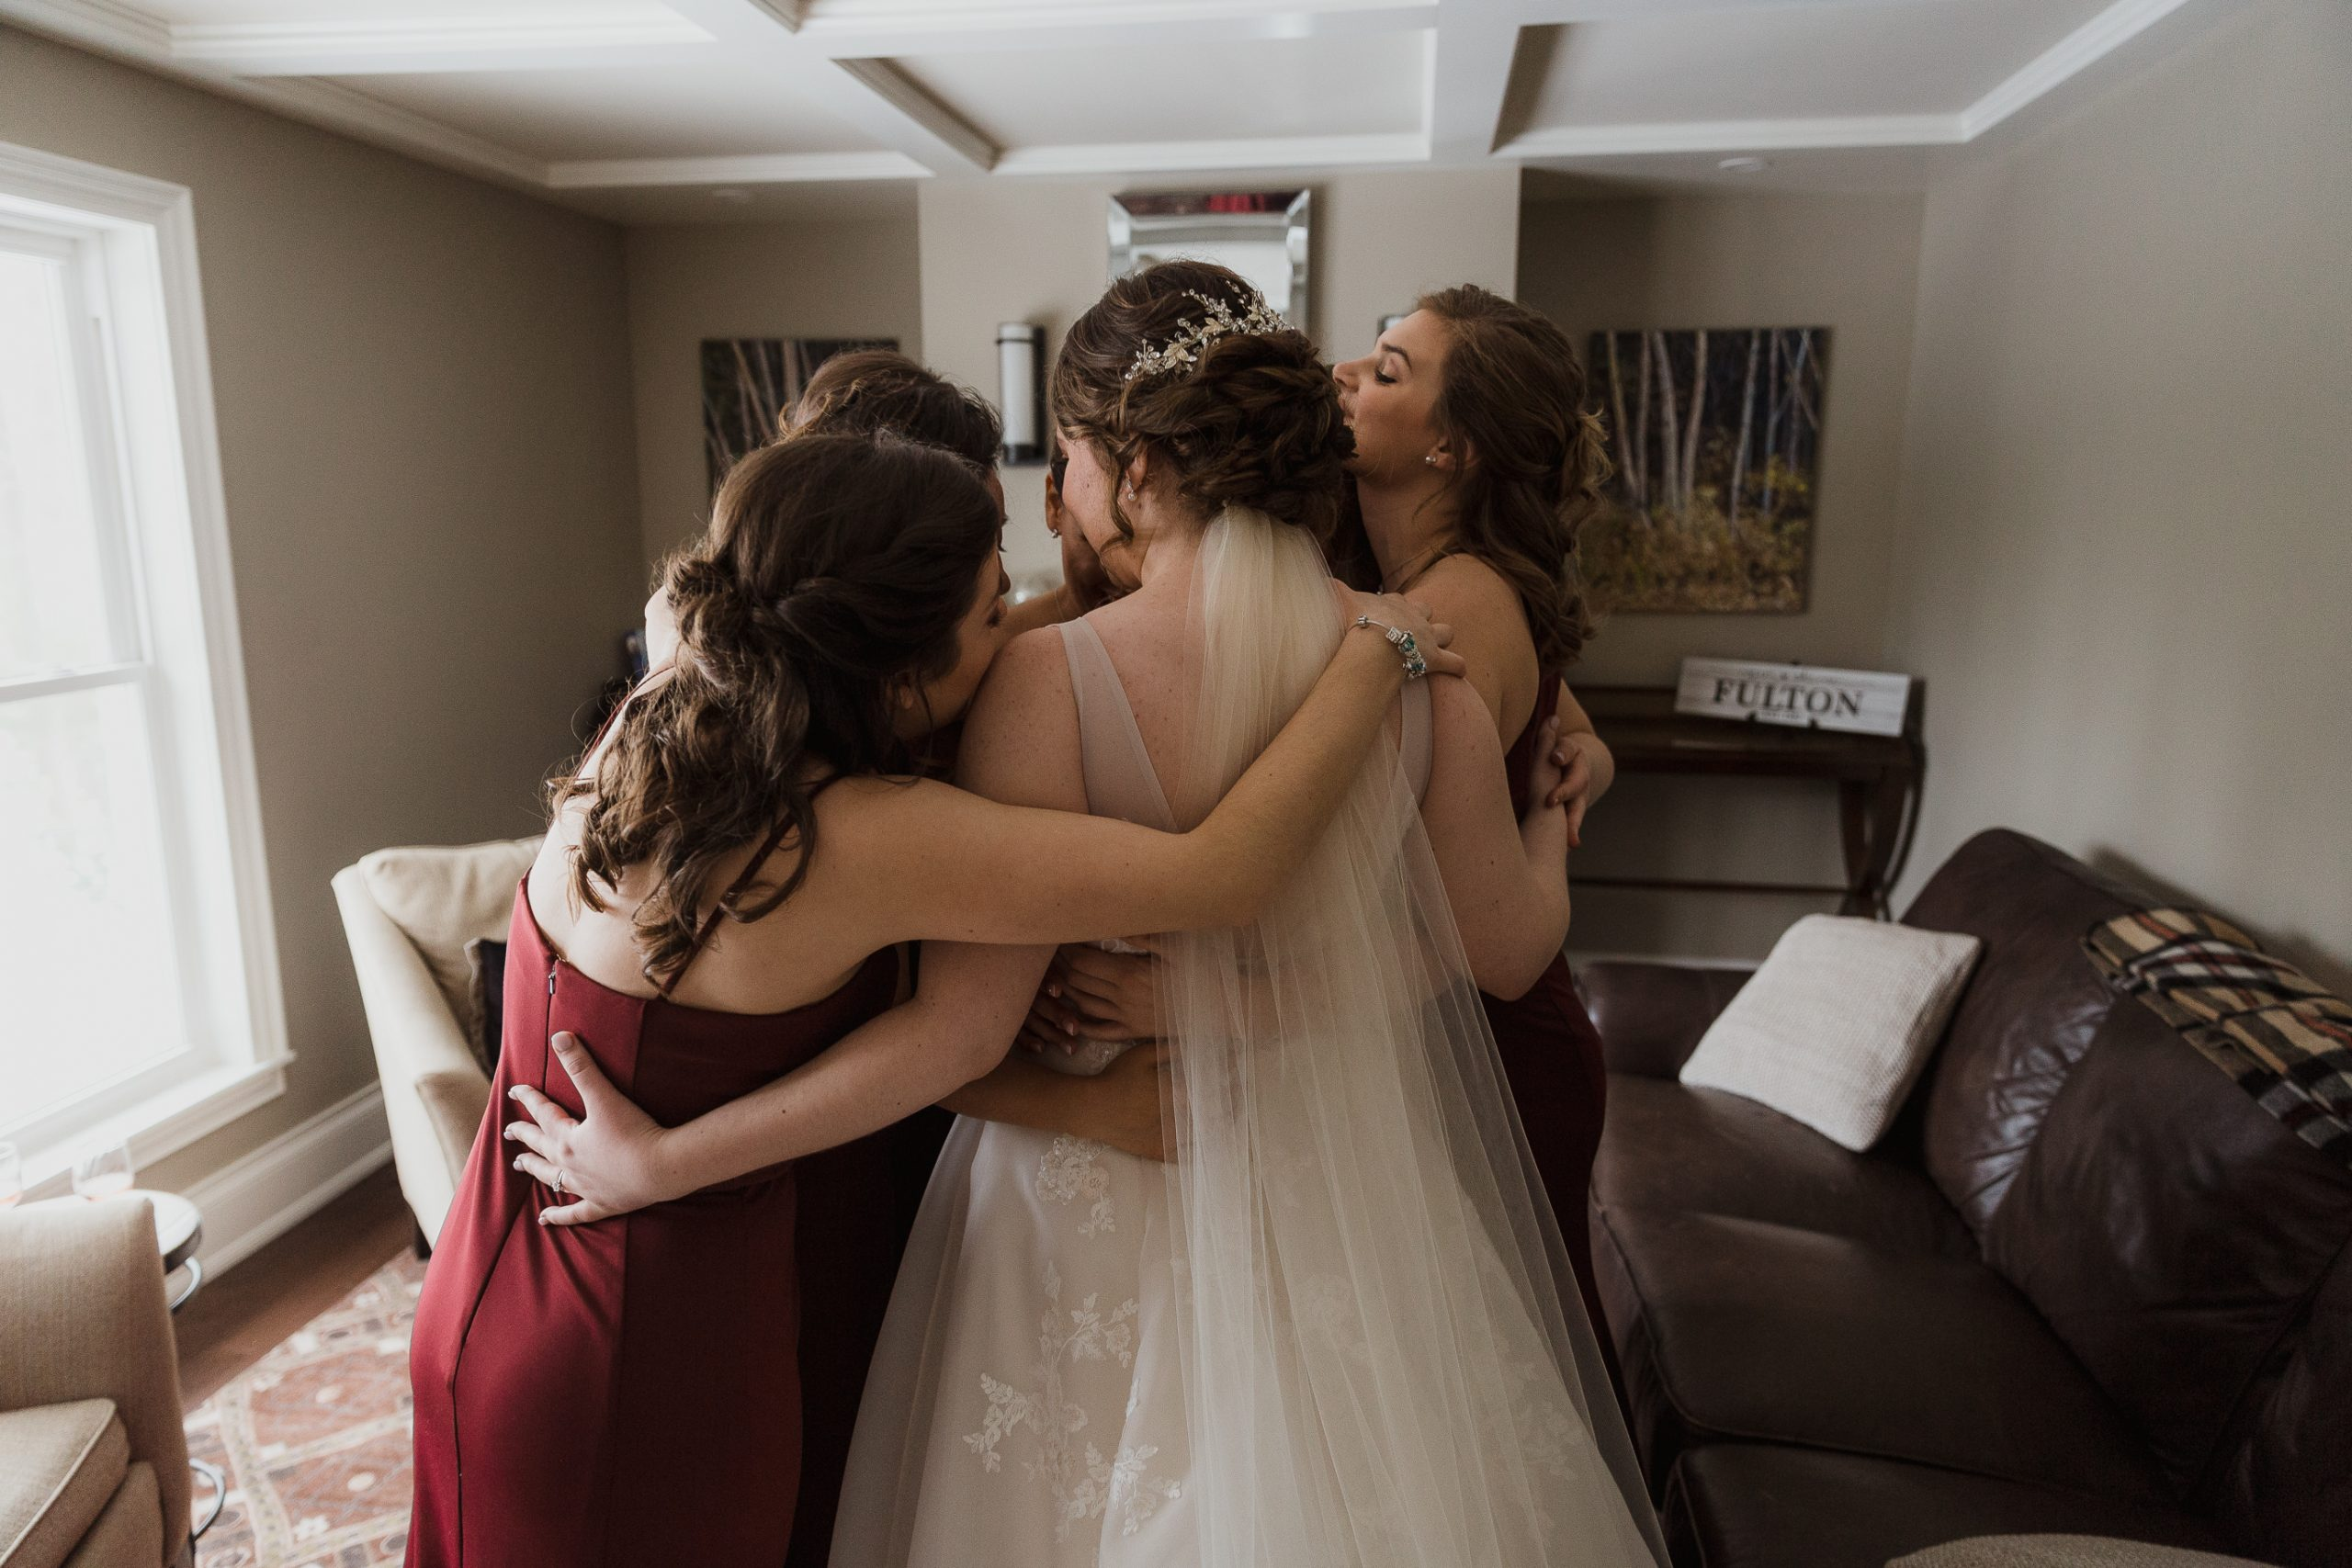 Wedding photos girls getting ready special moment between bride and bridesmaids, hugging